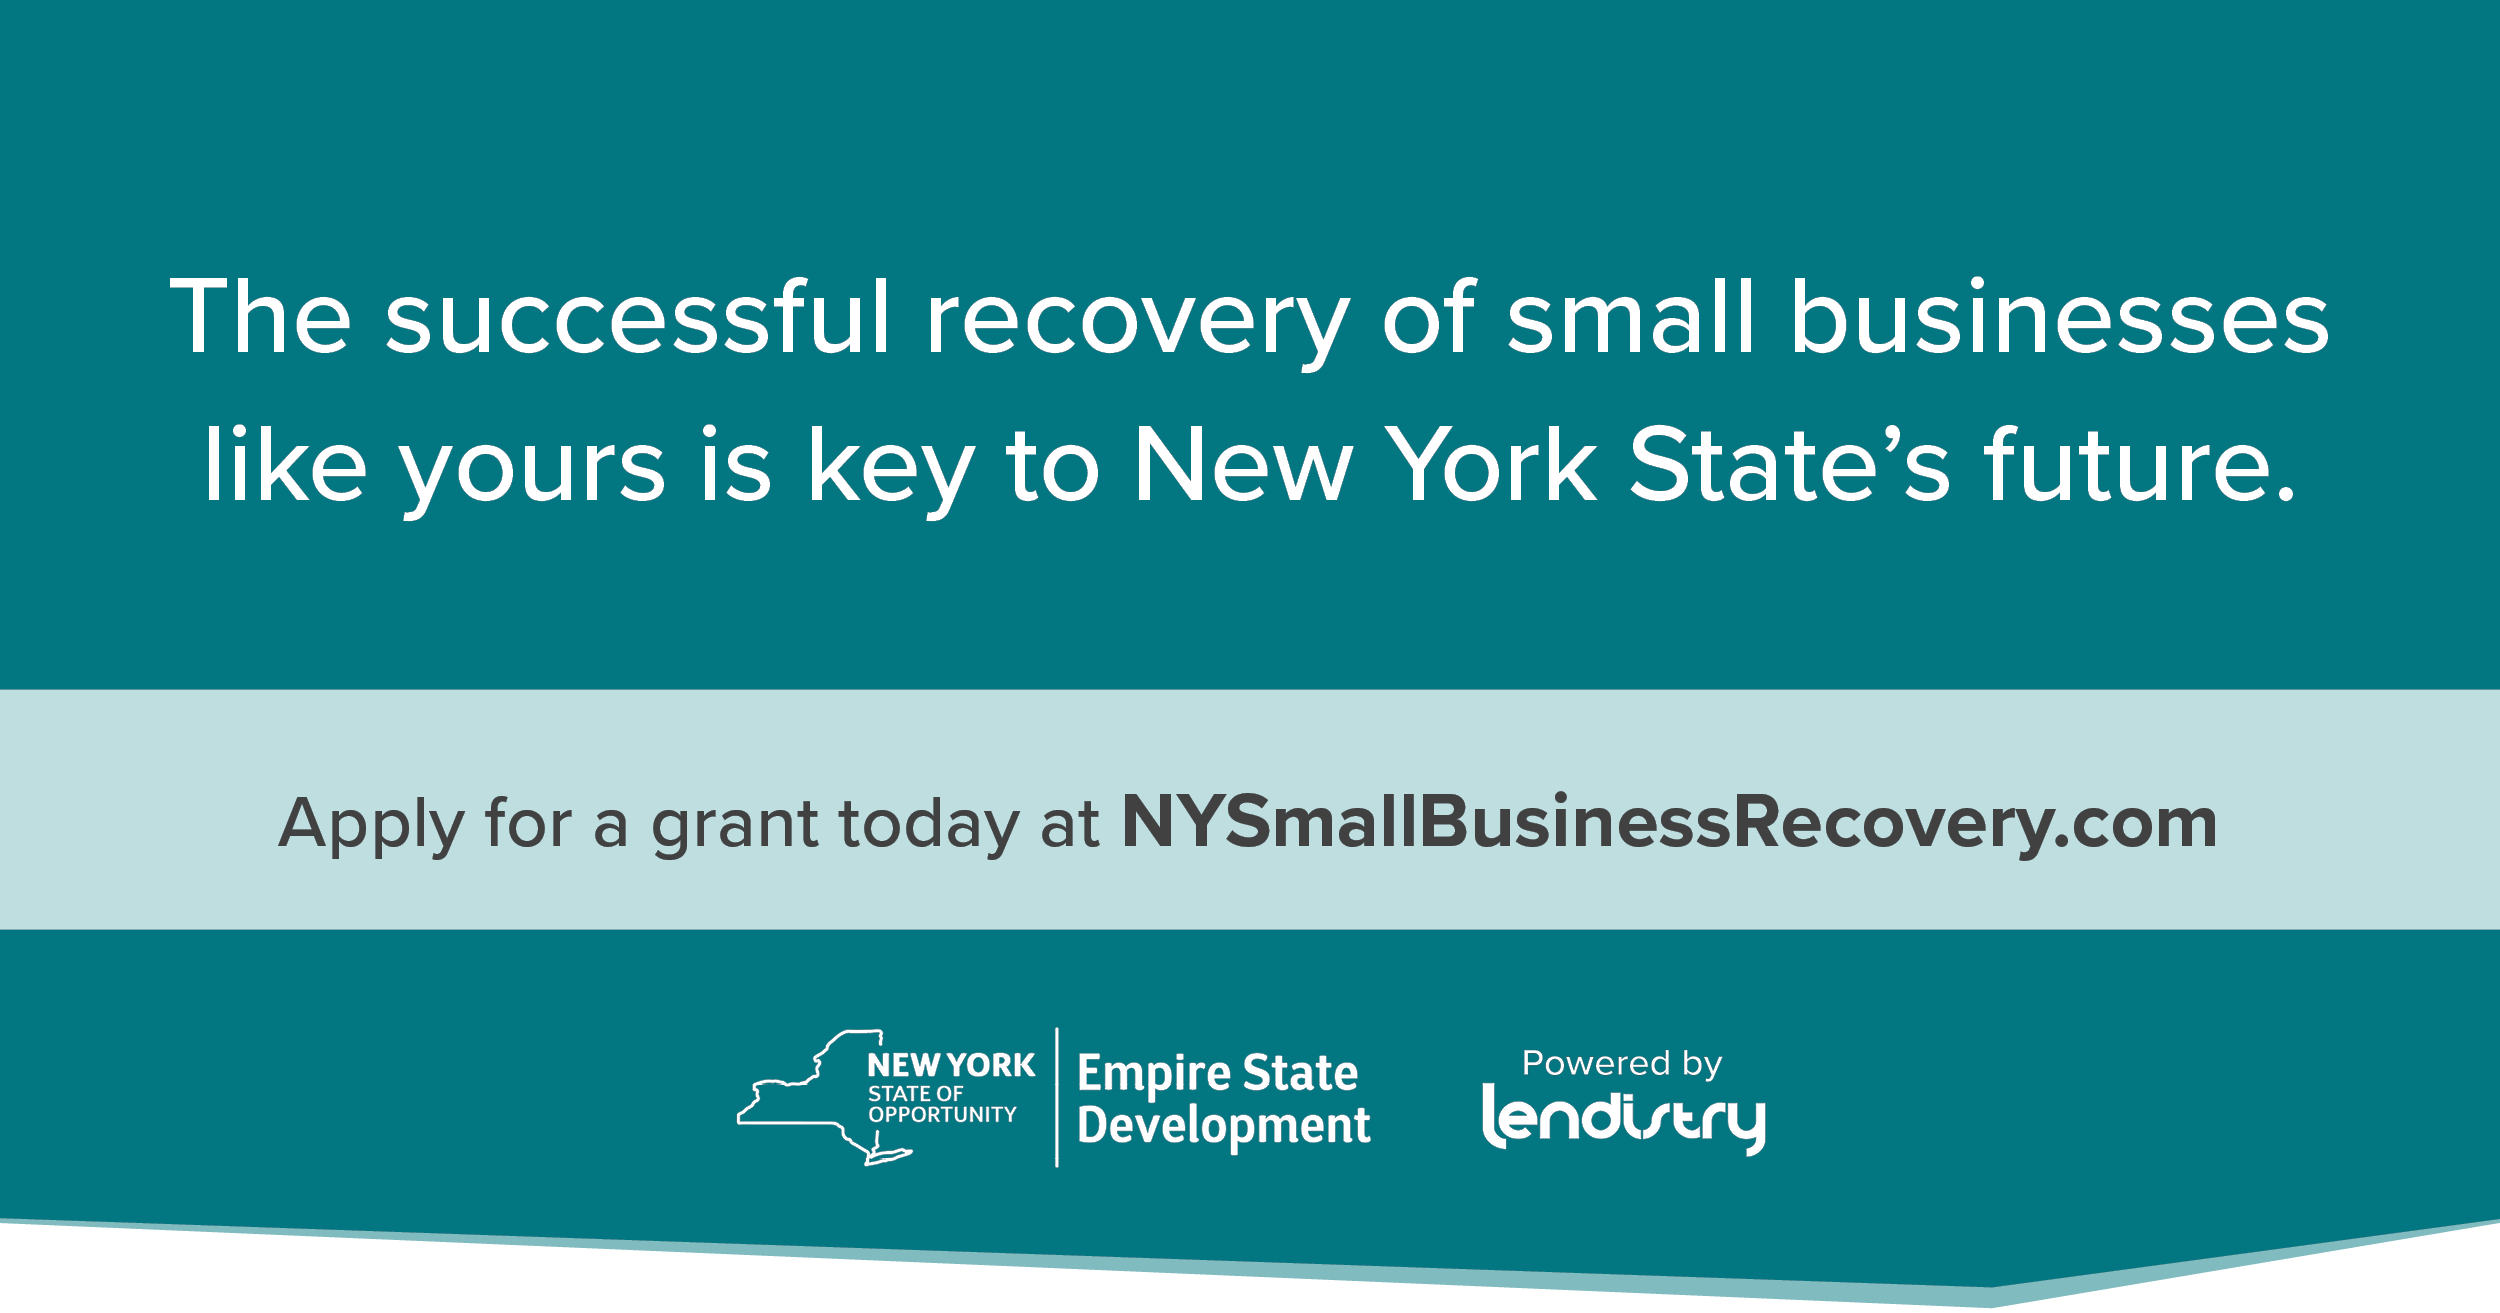 NYS Small Business Recovery Grant webinars- every Monday and Thursday at 9:30am – live via zoom. no preregistration required.